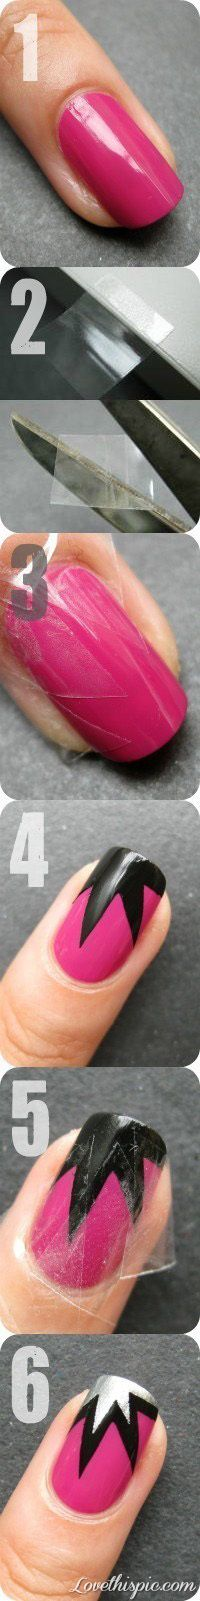 DIY Nails nails diy nail art nail trends diy nails diy nail art diy nail tutorial